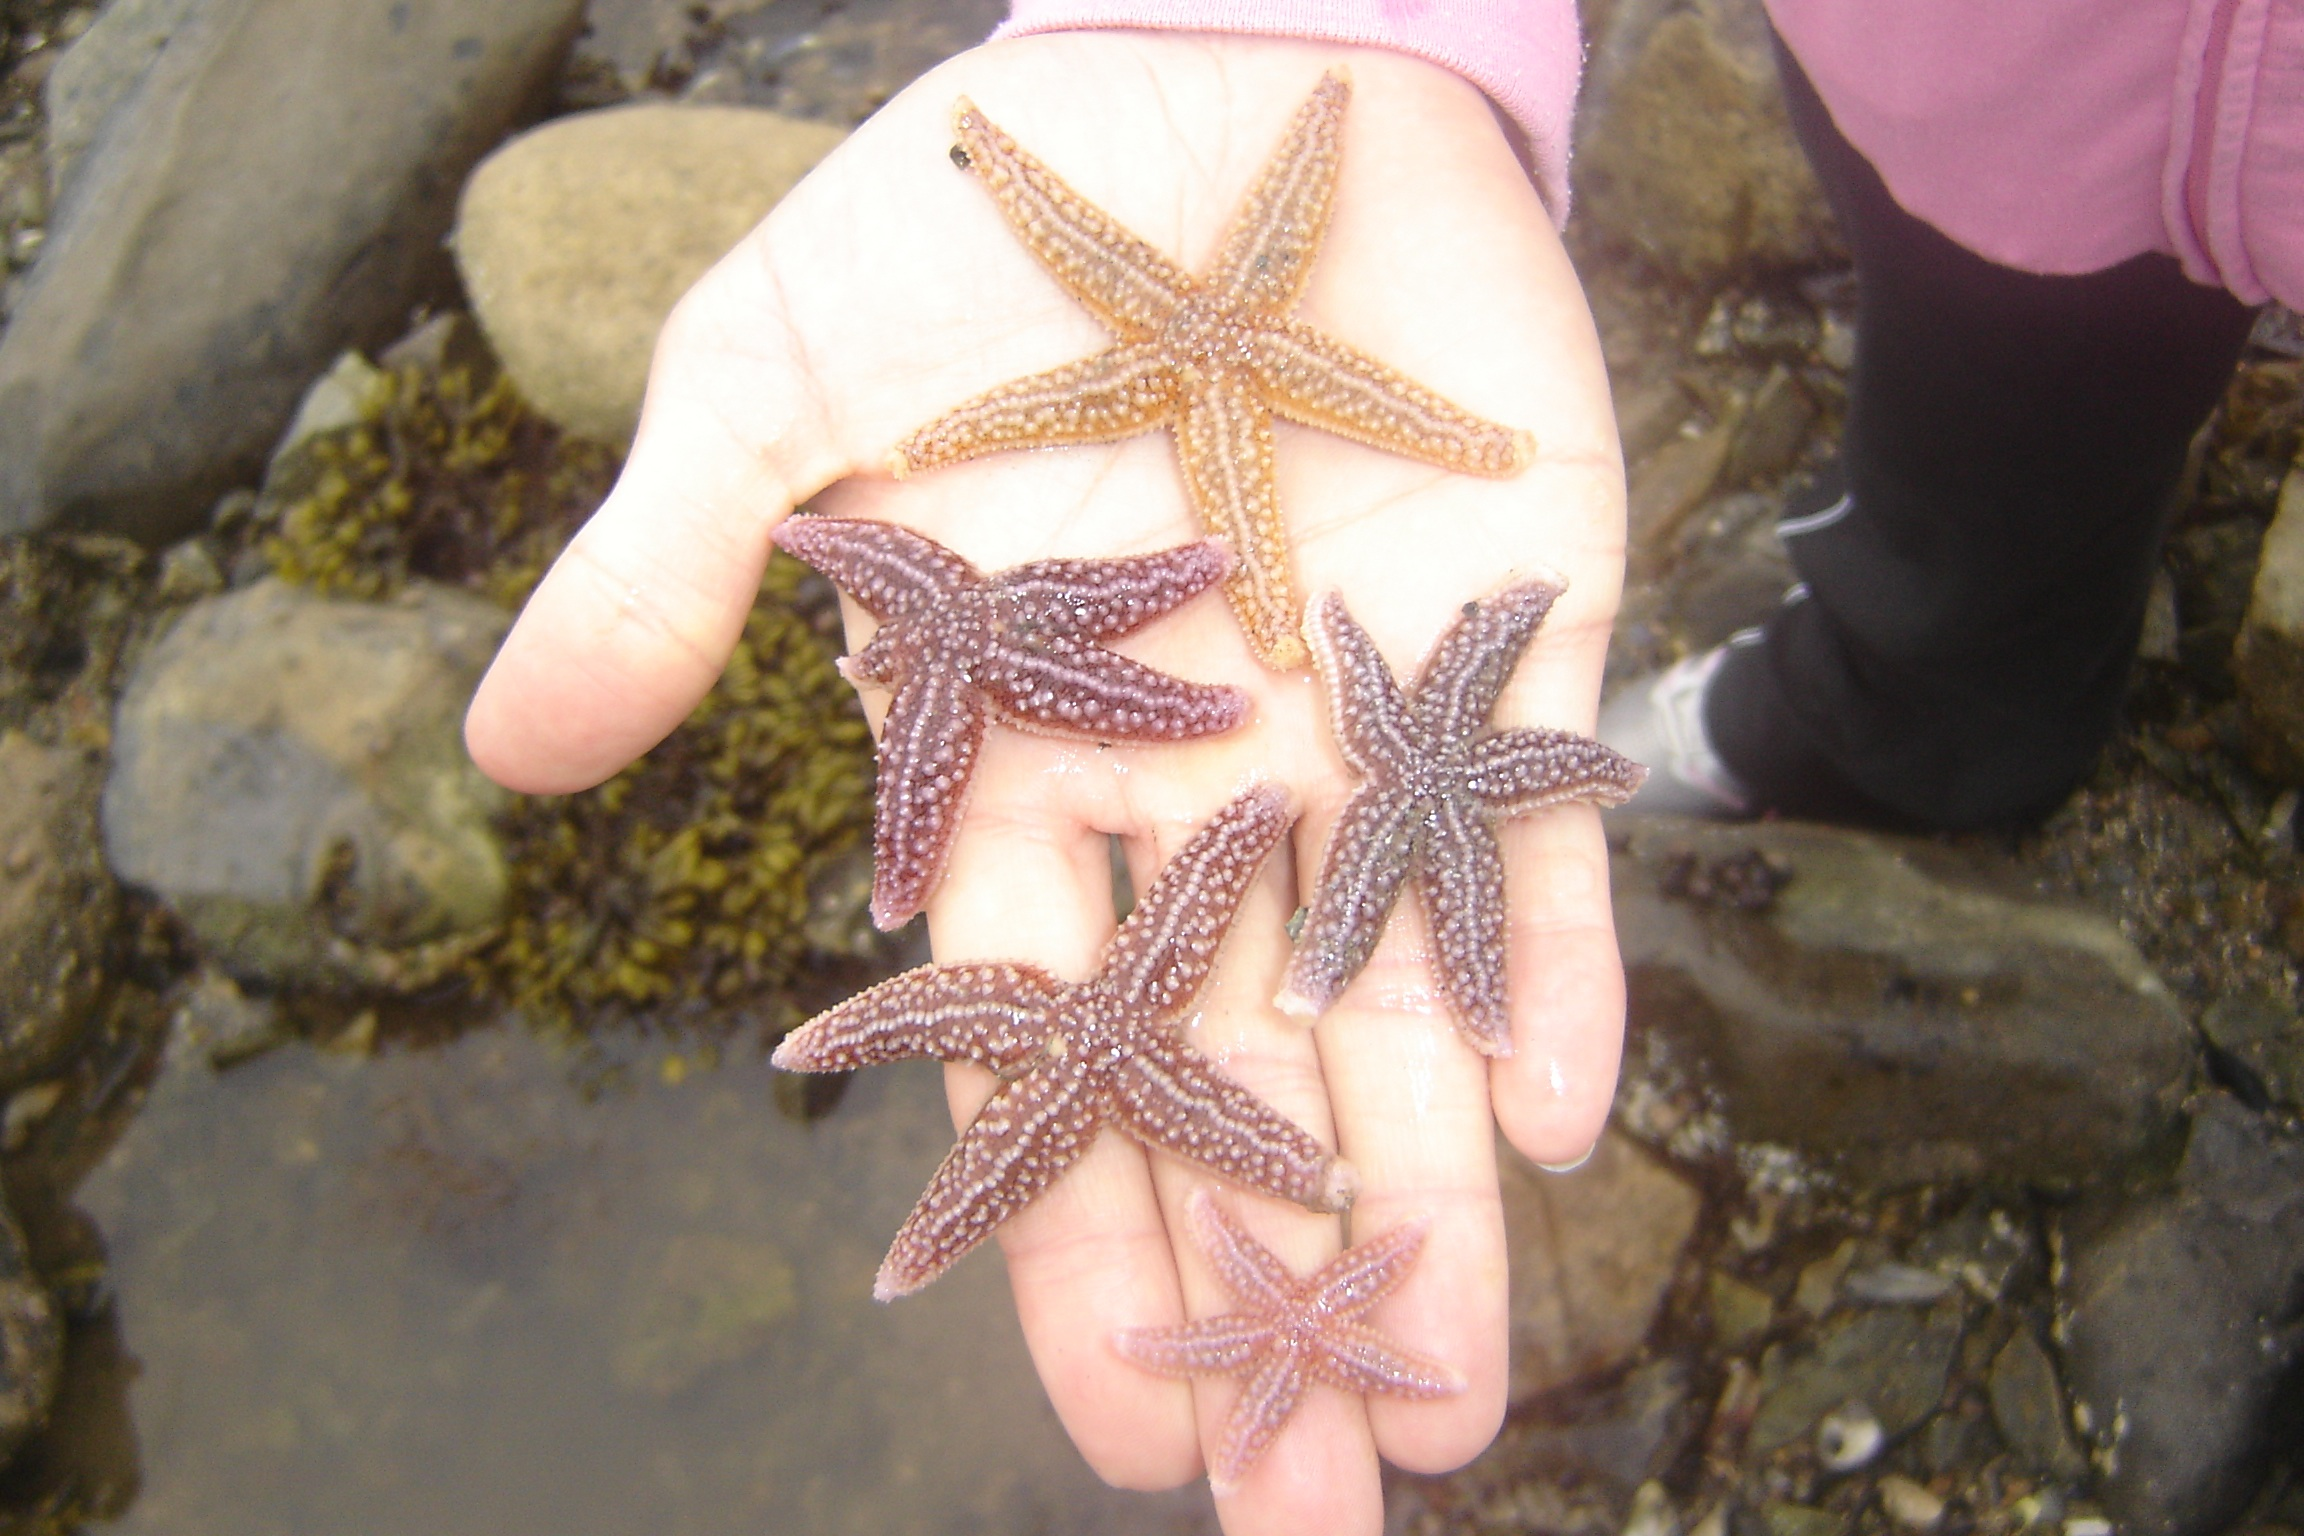 A multicolored collection of sea stars from their outing.